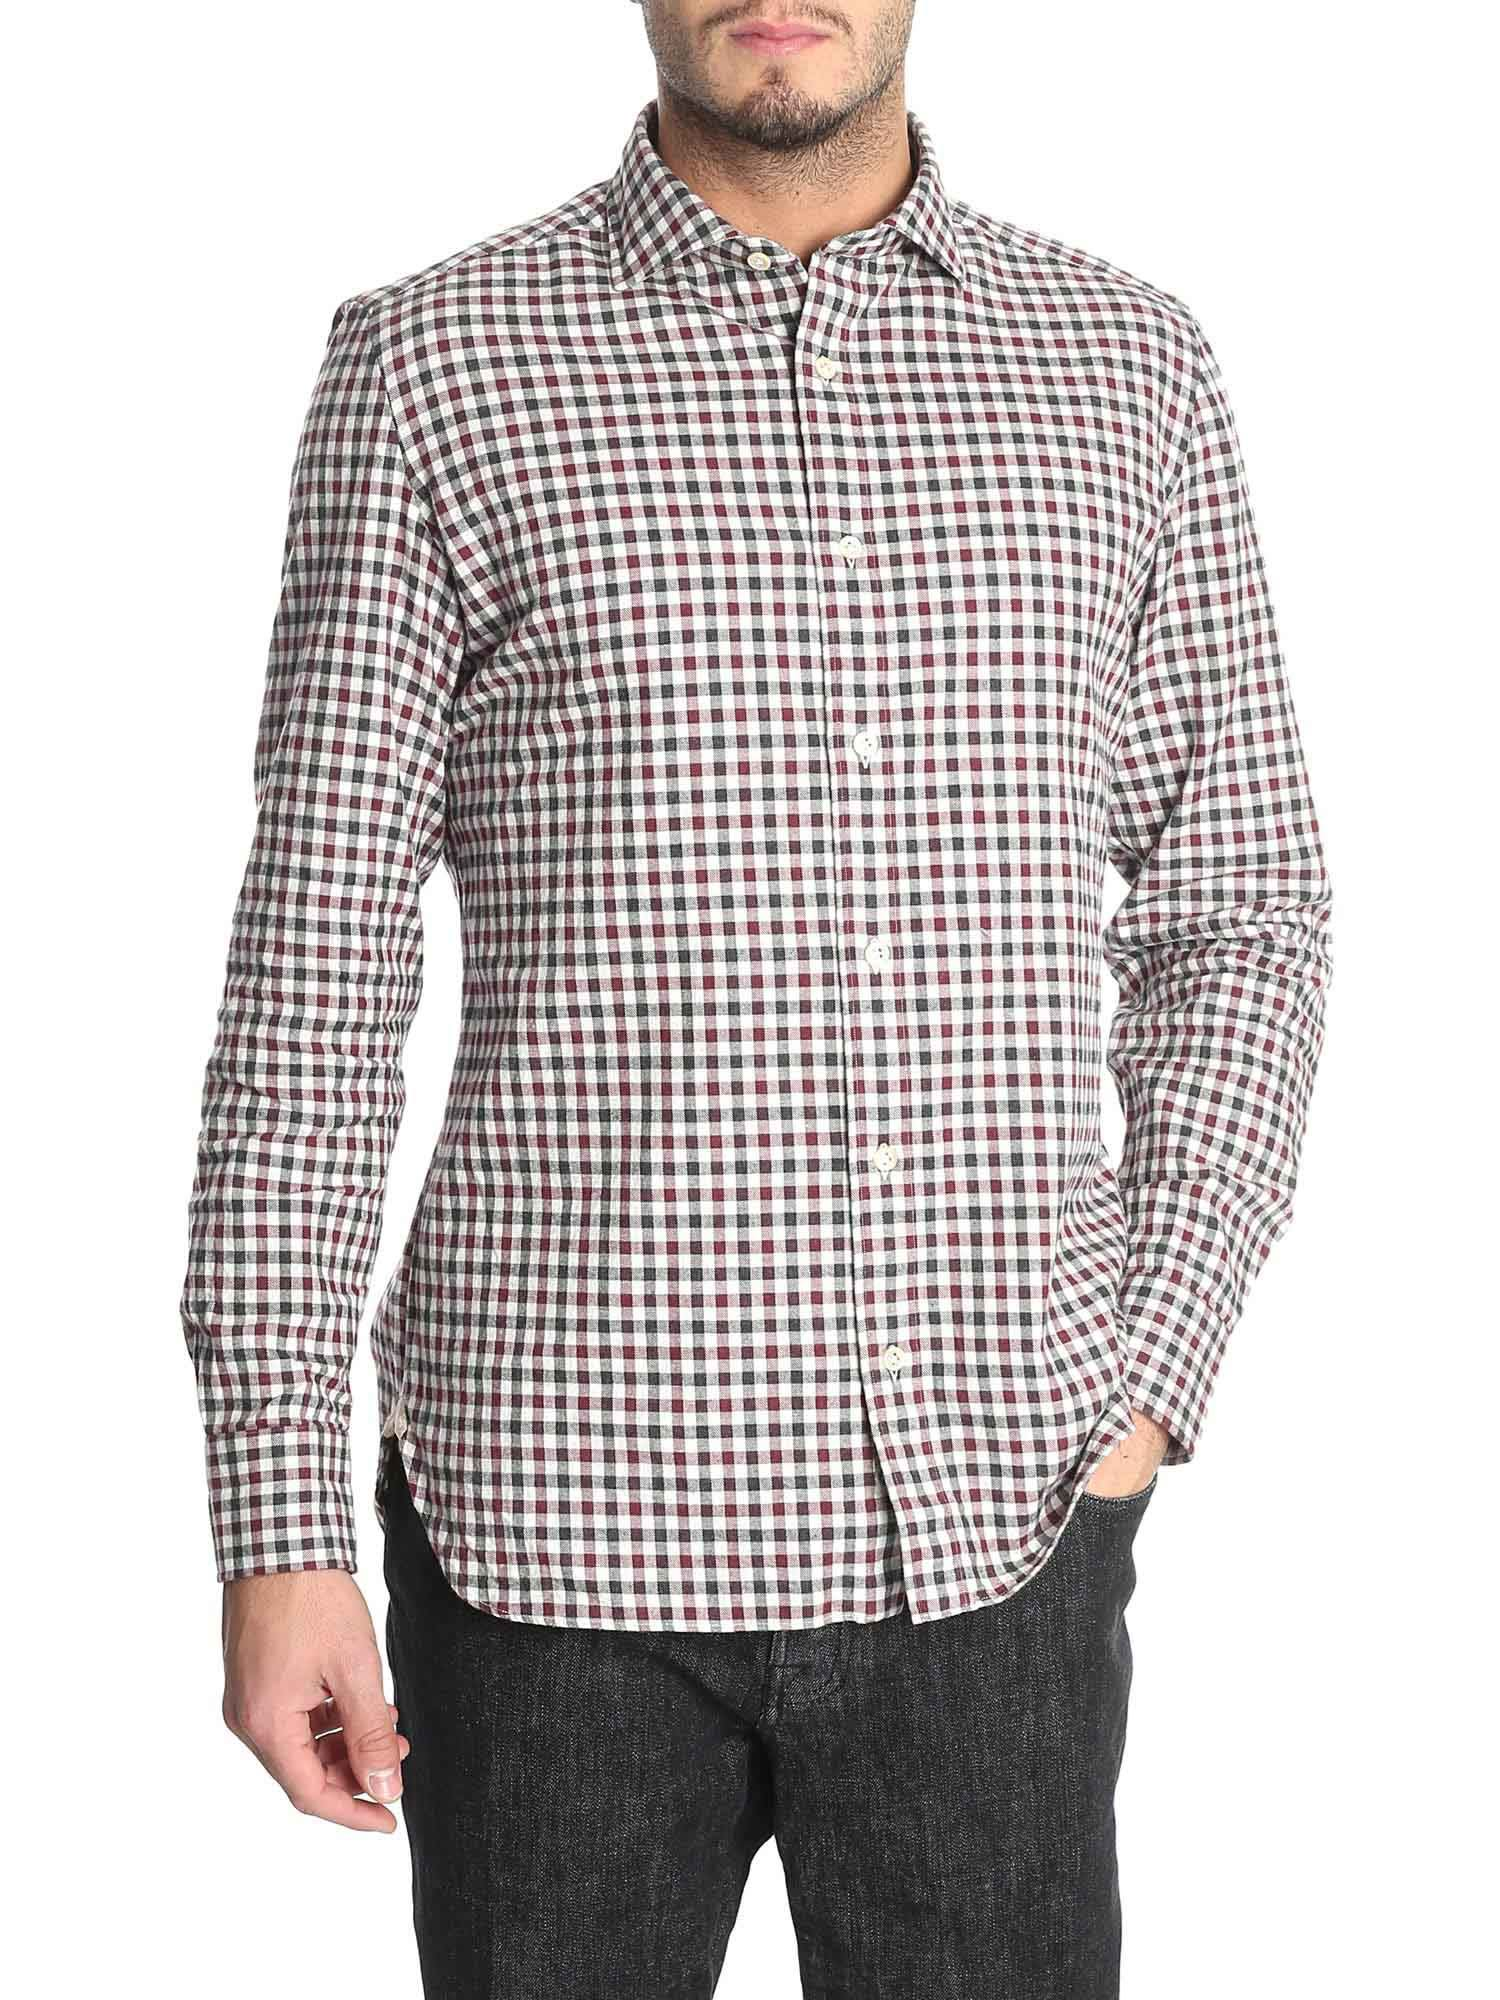 Luigi Borrelli Checked Shirt